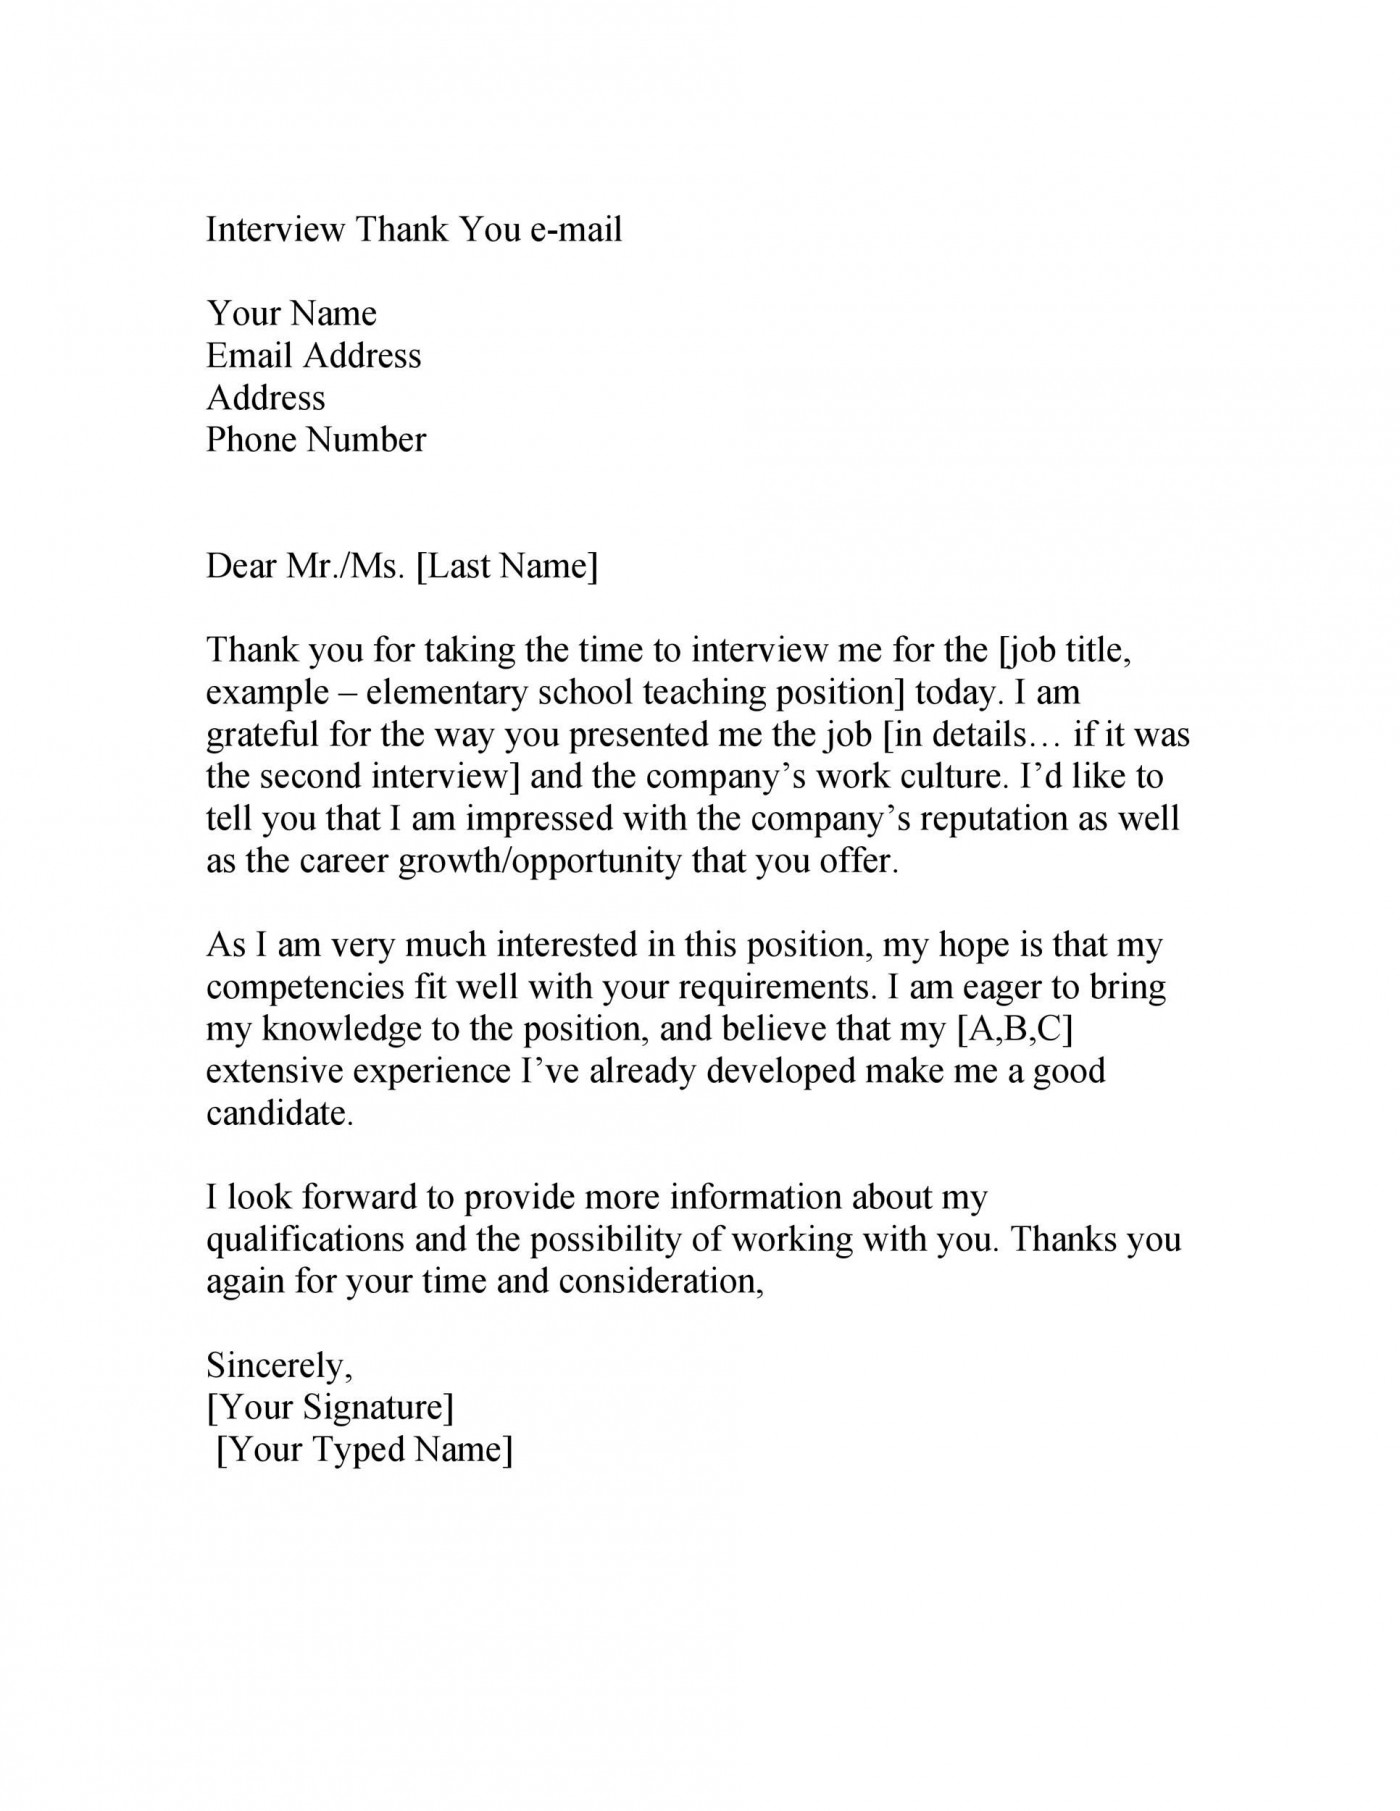 006 Formidable Thank You Note Template For Interview High Resolution  Card Example After Letter Job1400